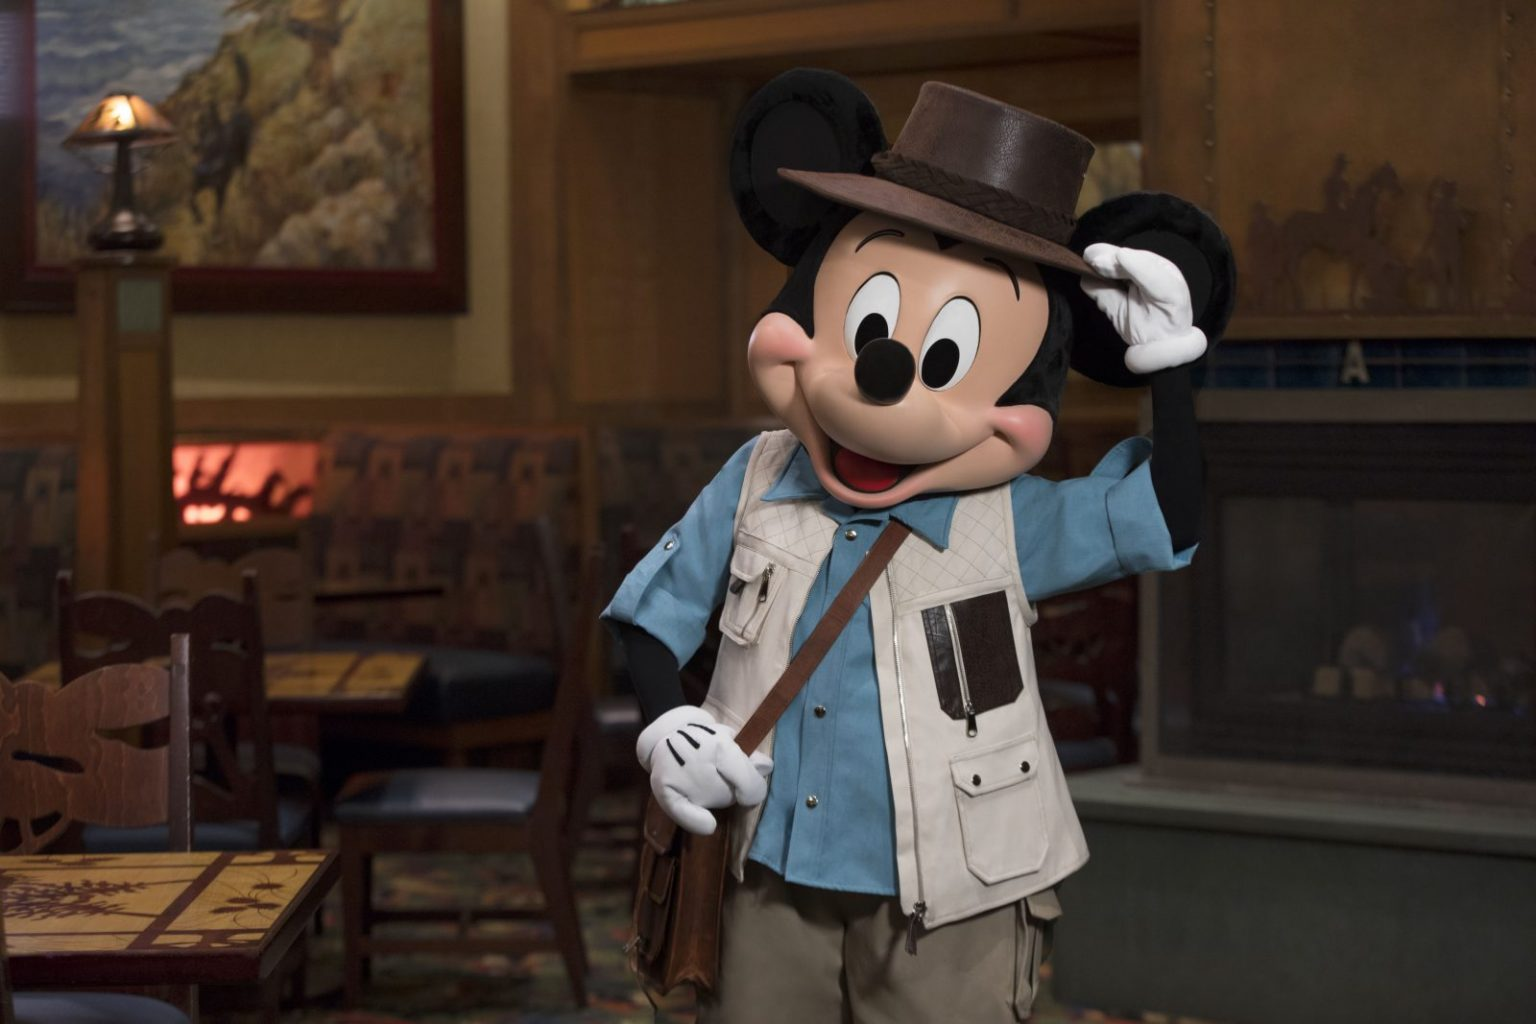 Adventurer Mickey at the Storytellers Cafe